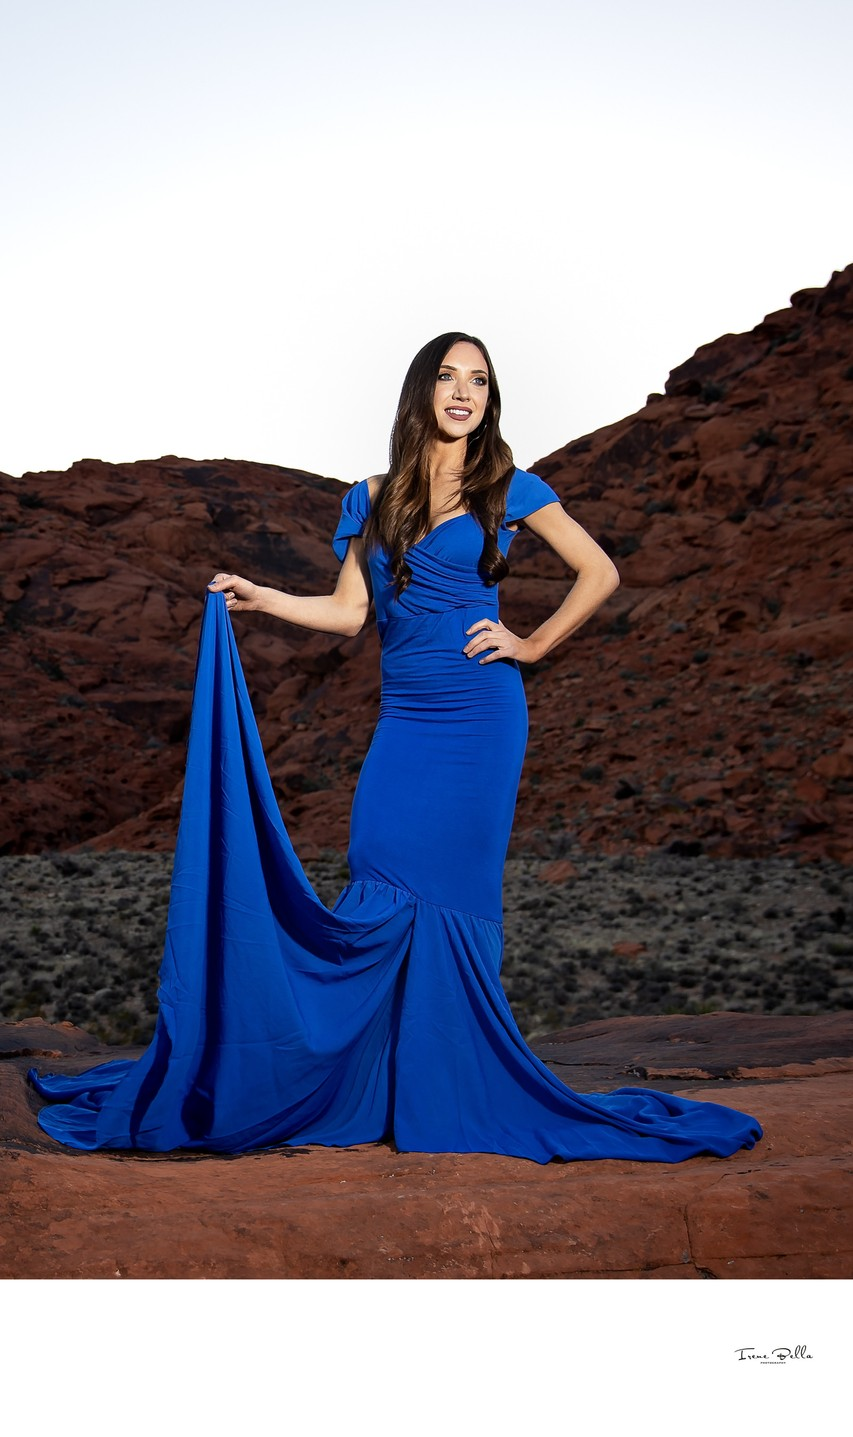 Best Red Rock Glamour Photographer